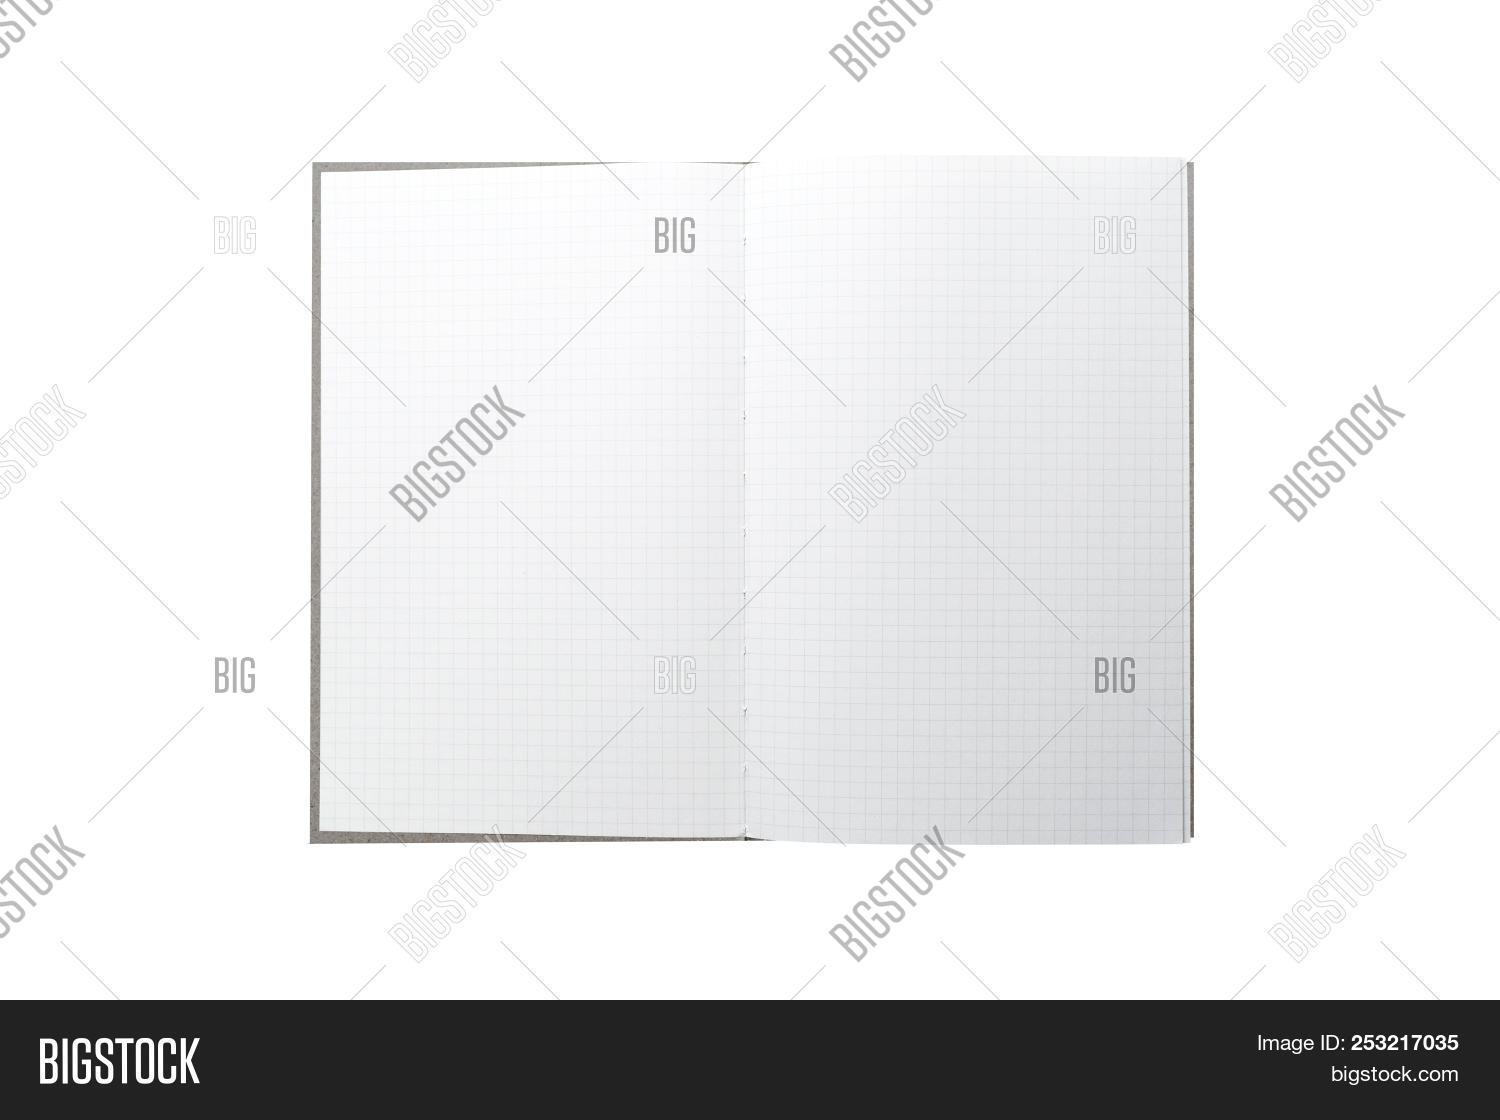 Top View Graph Book Image & Photo (Free Trial) | Bigstock